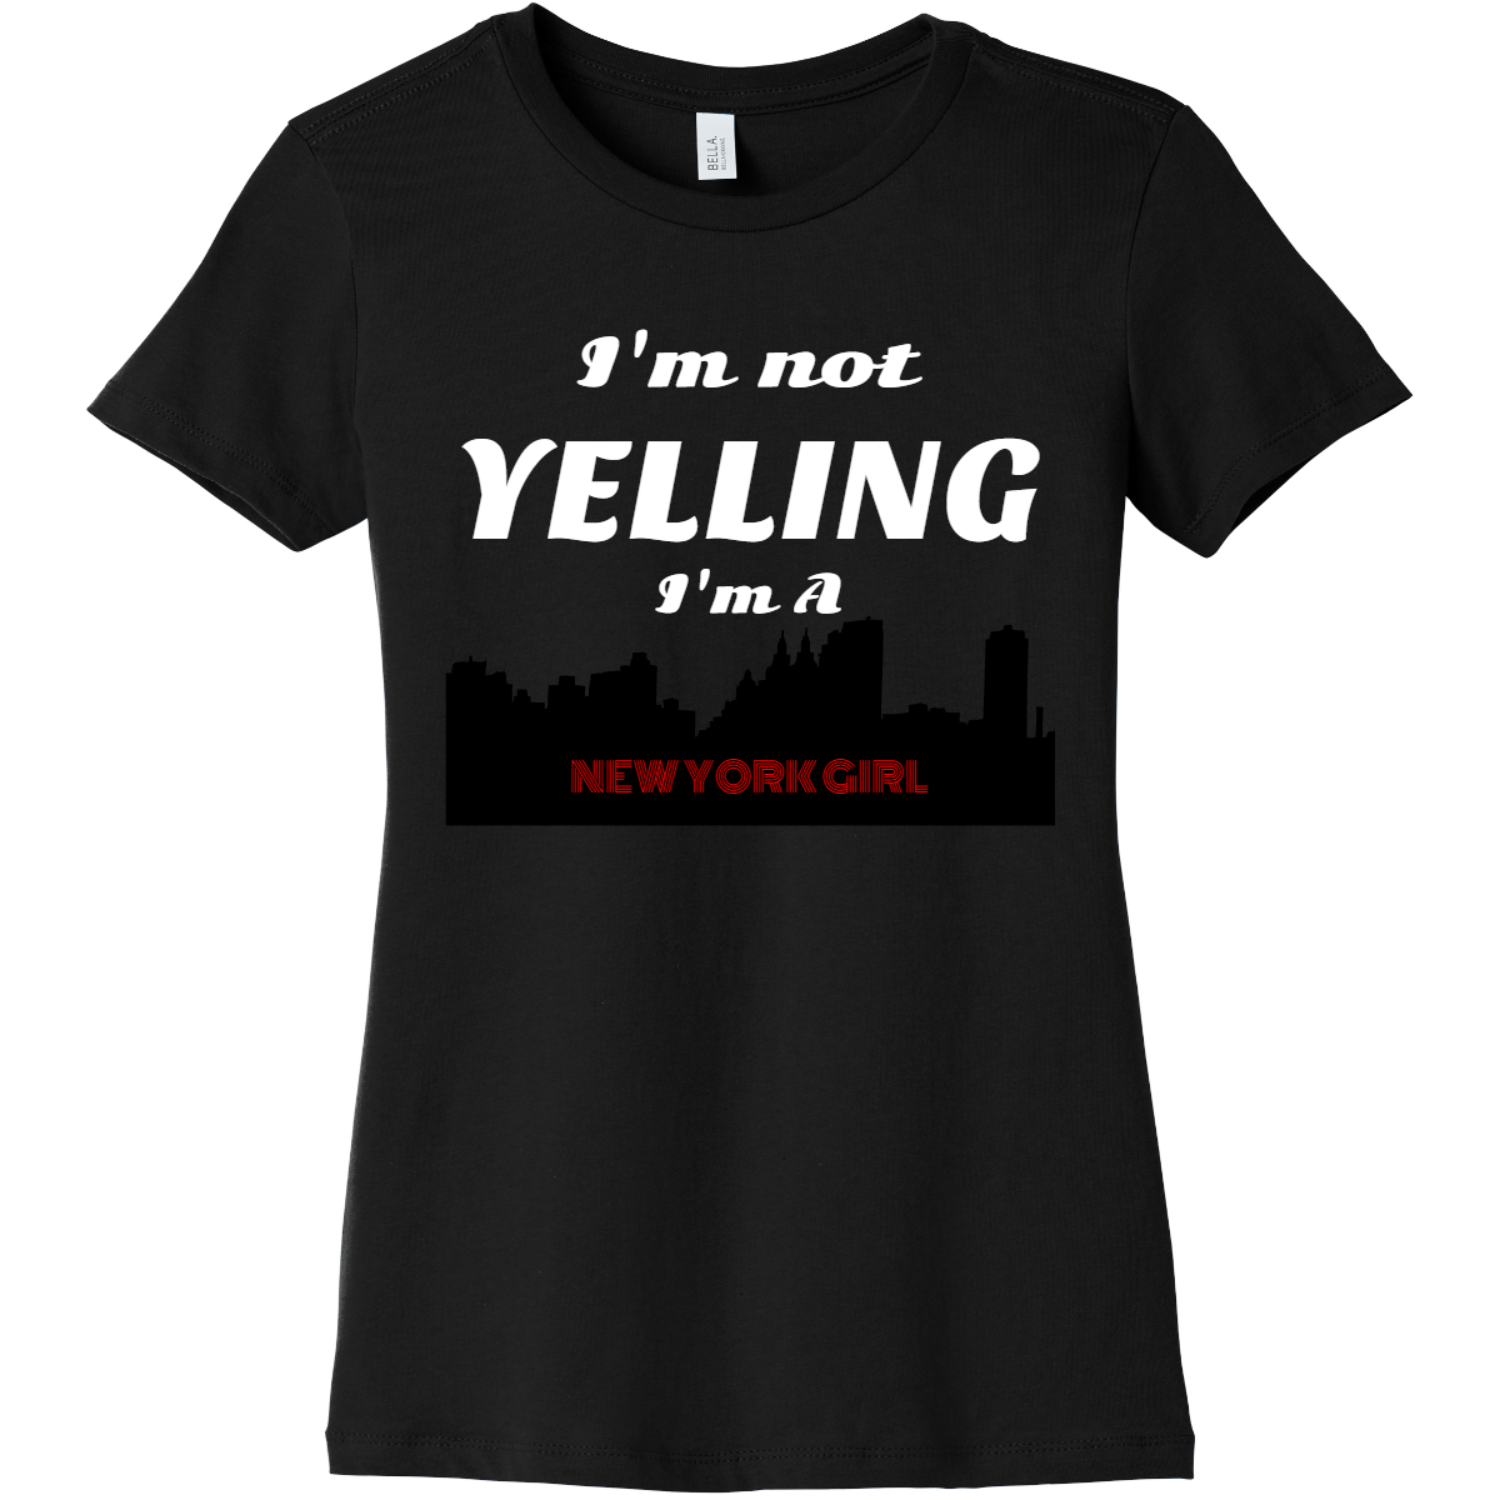 New York Girl I'm not yelling Black Bella Canvas 6004 Ladies The Favorite Tee